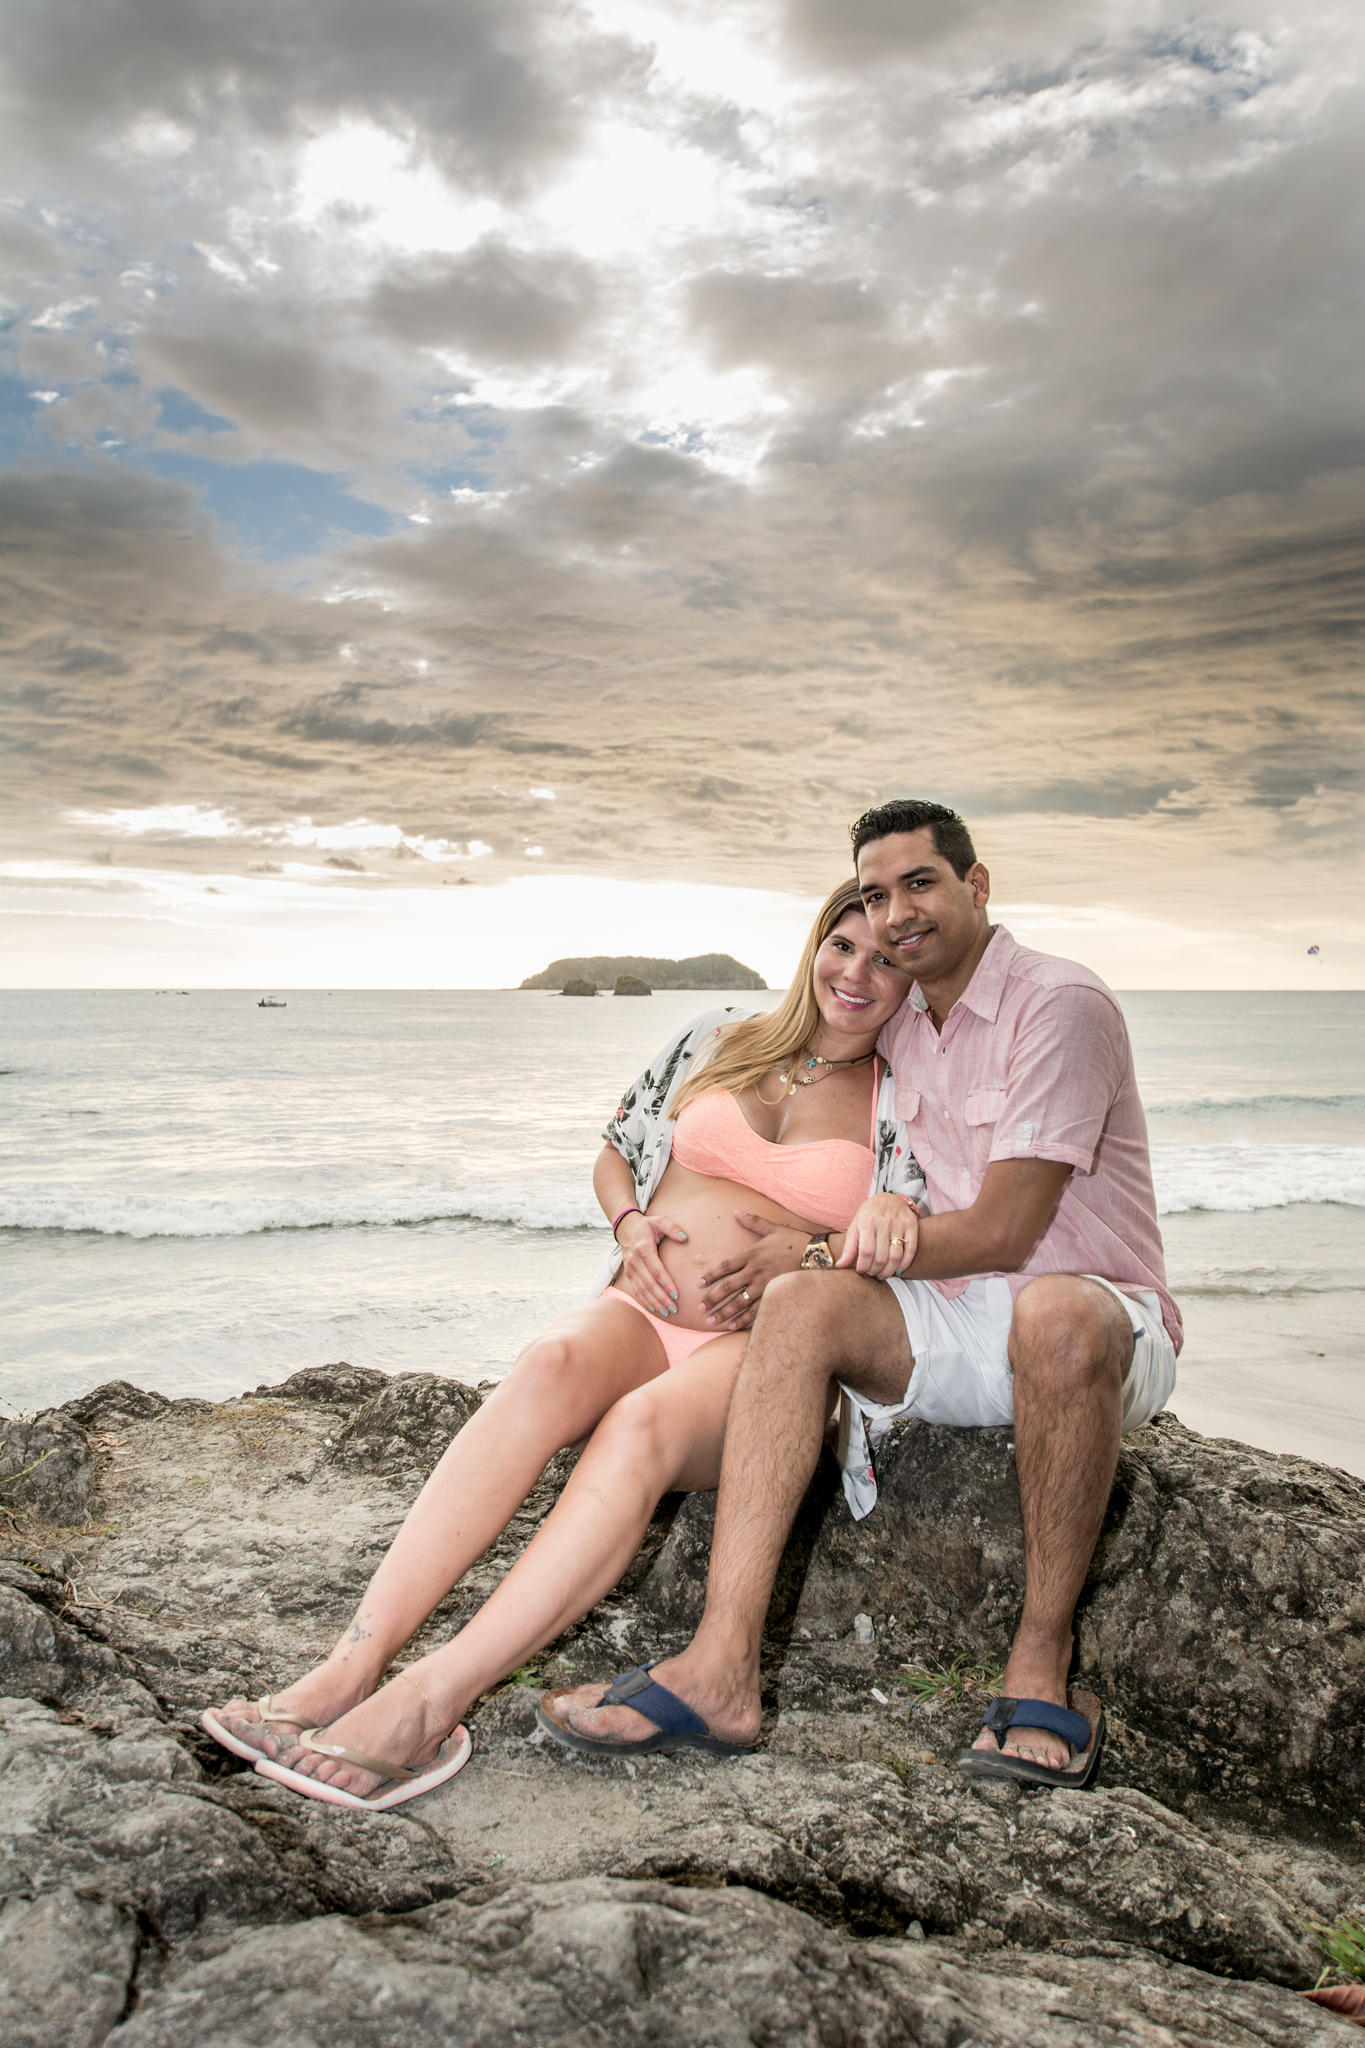 Willmar, Daniel & Joaquin - Maternity Session